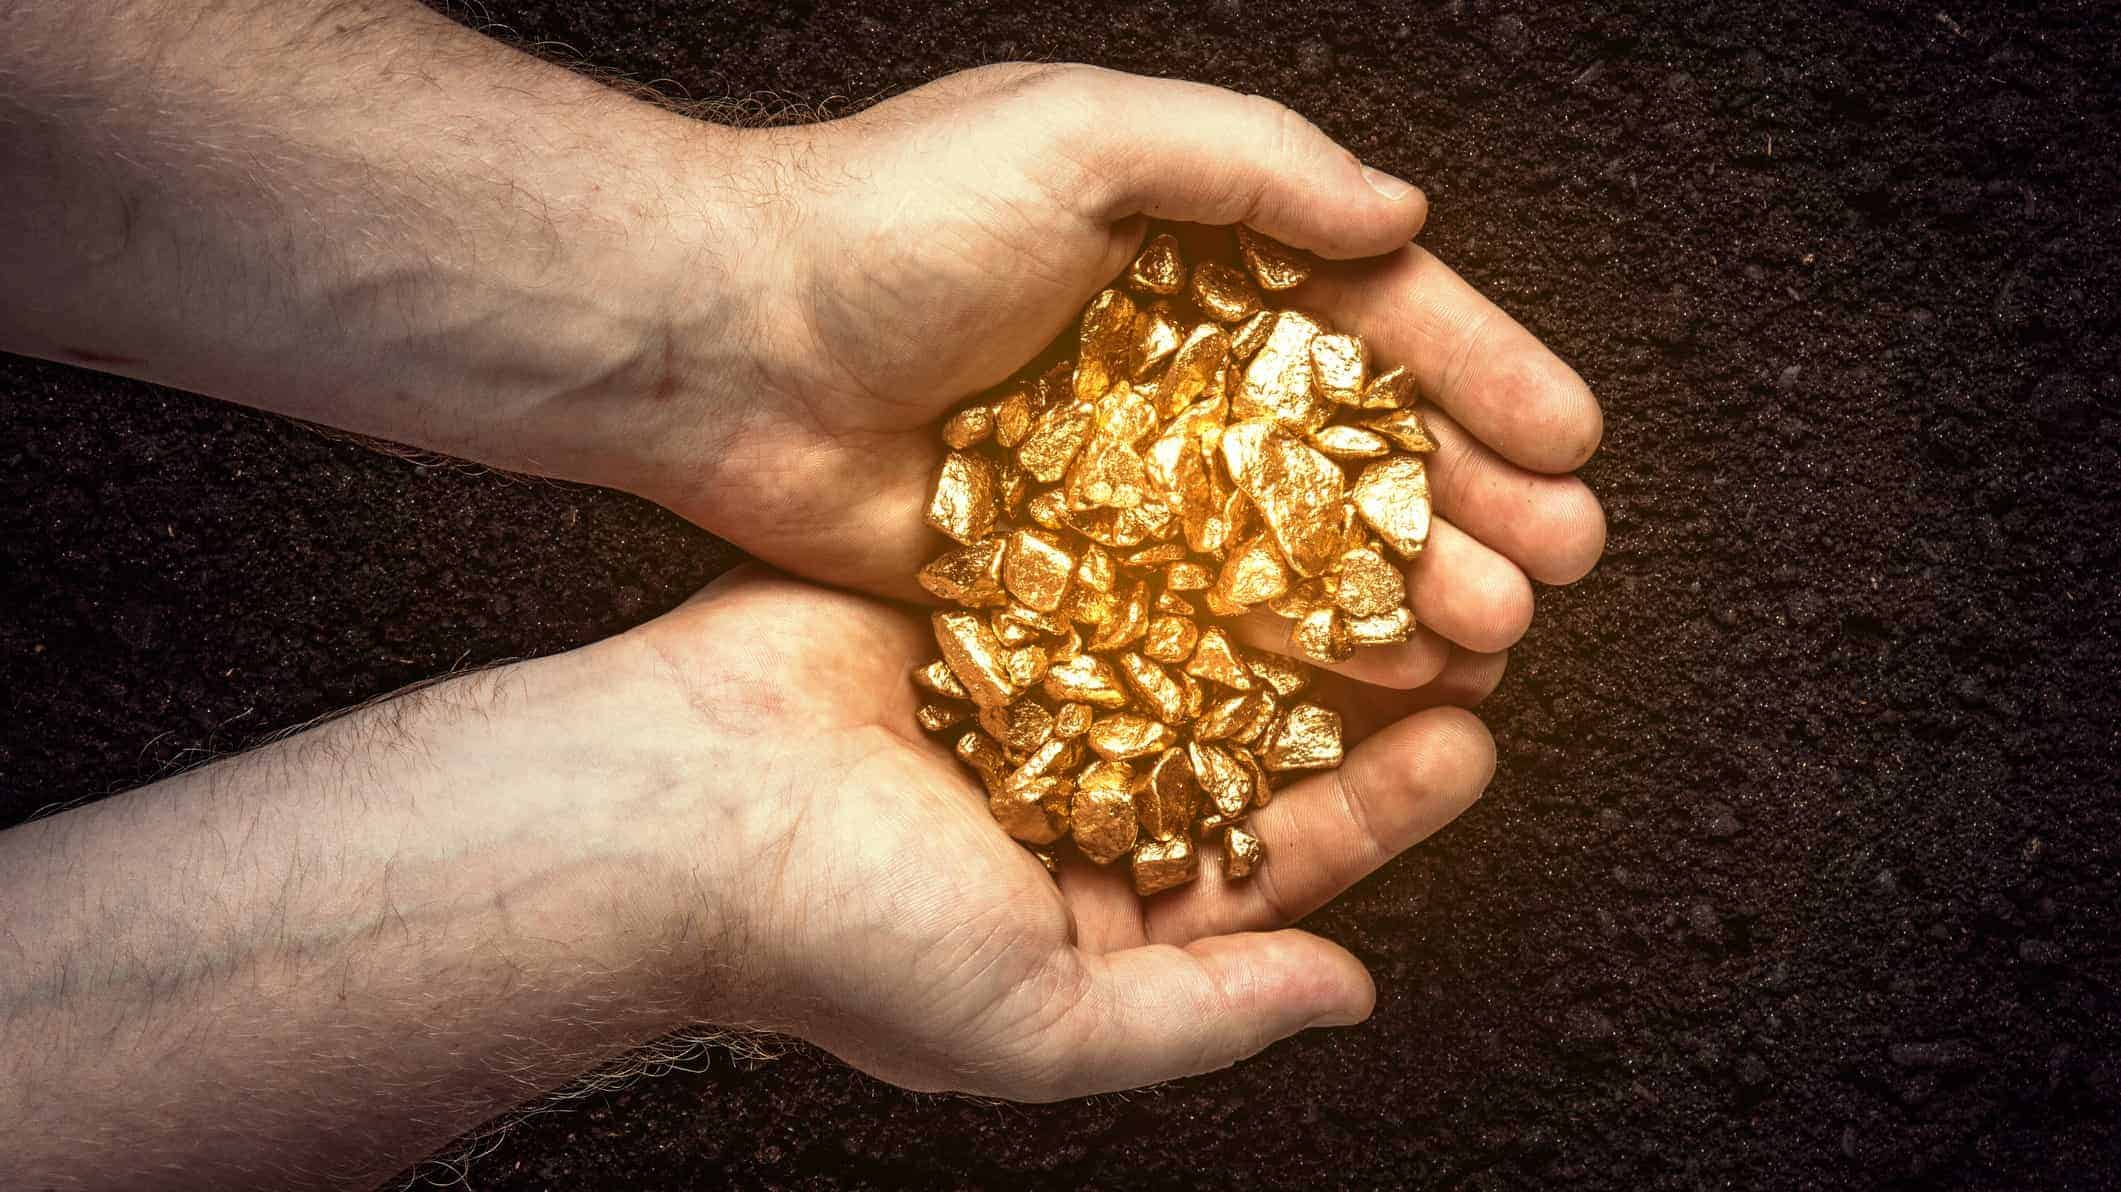 gold asx share price rise represented by hands holding pile of gold